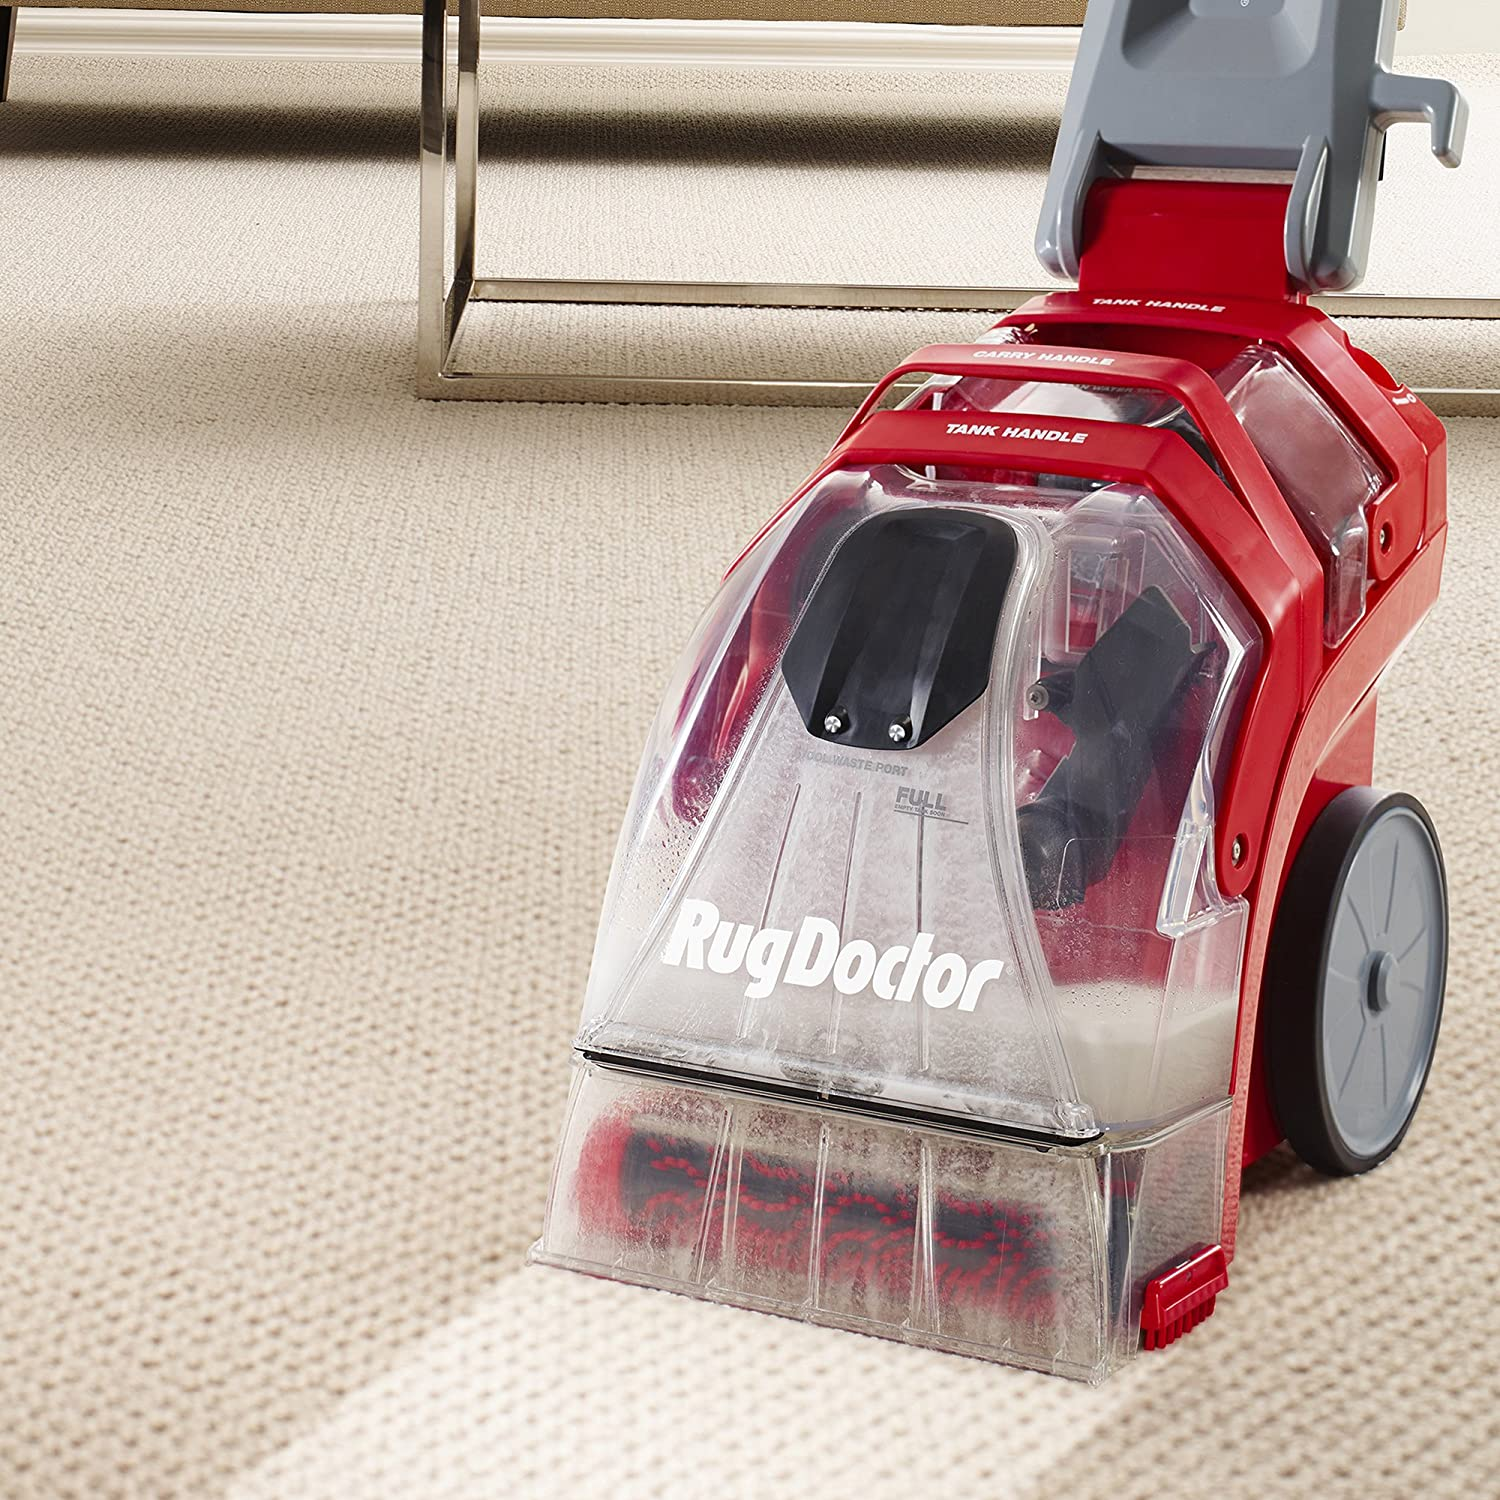 Rug Doctor top rated carpet cleaner